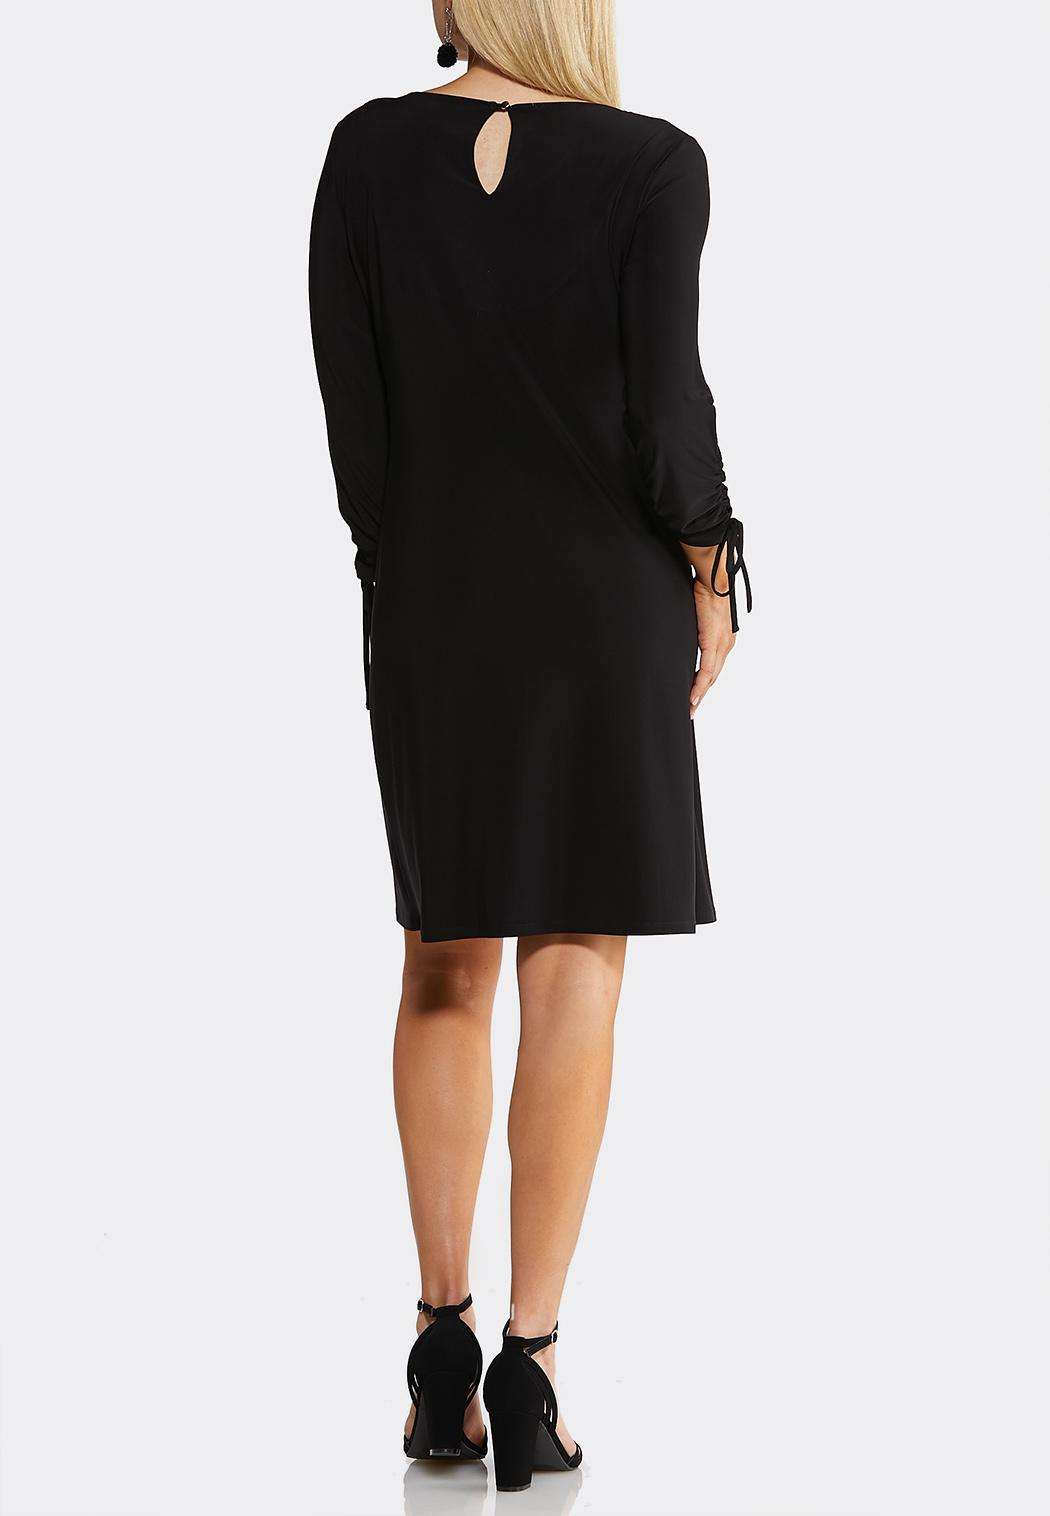 Ruched Tied Sleeve Dress (Item #43896213)